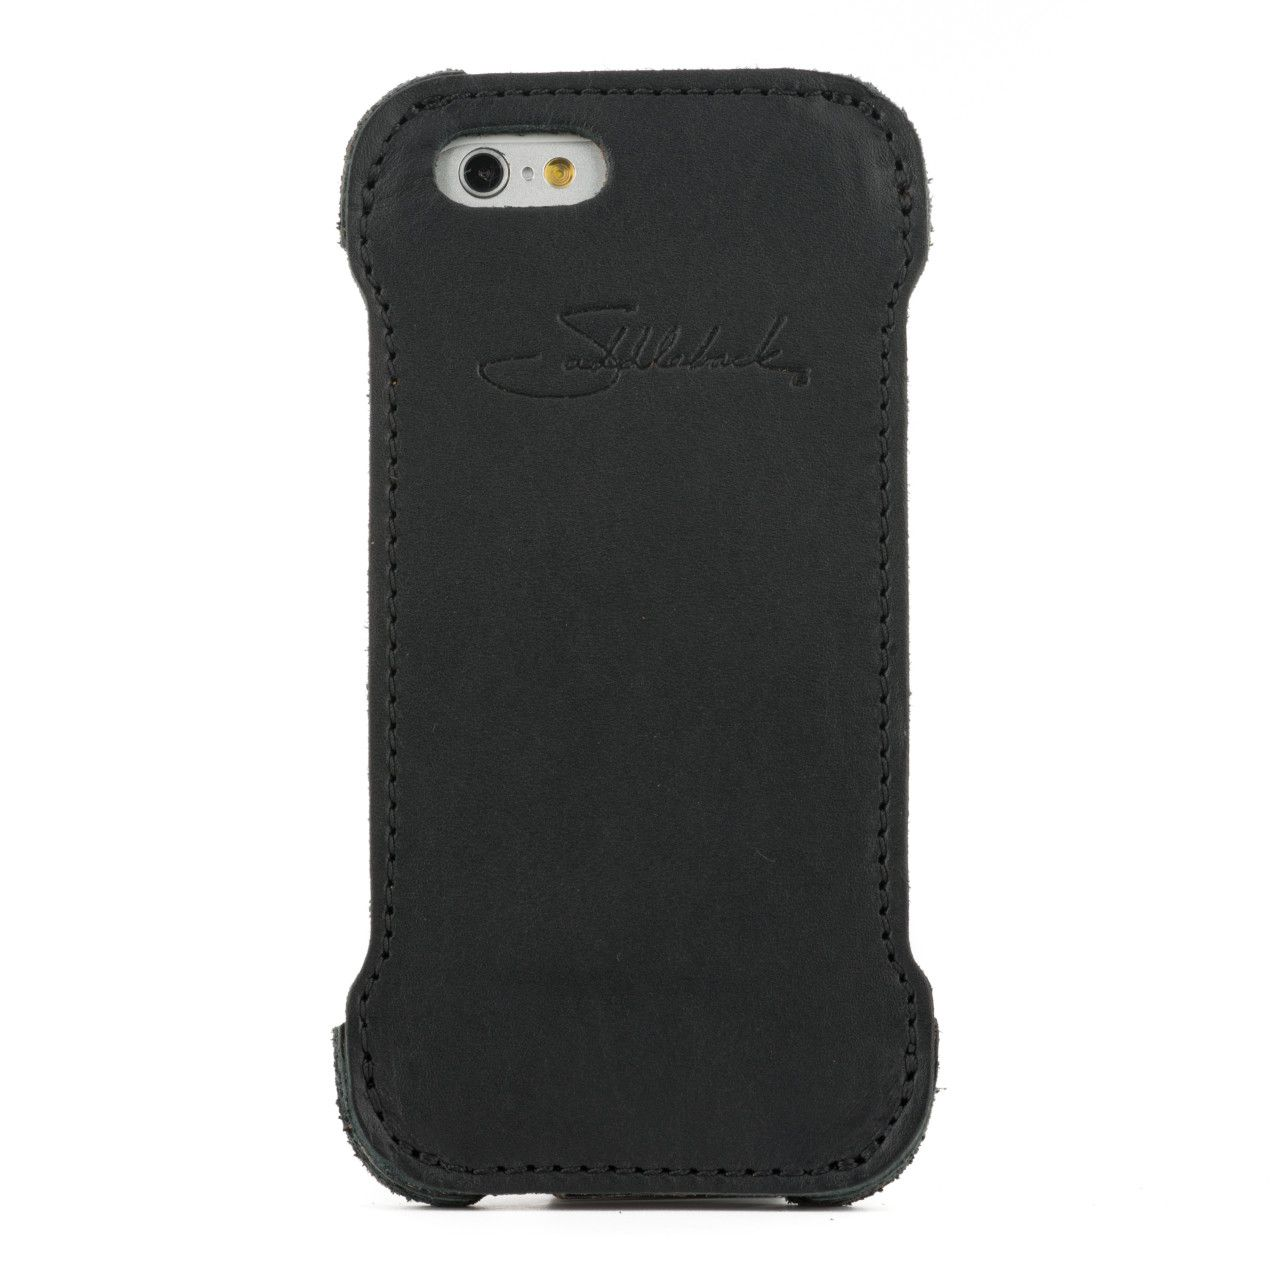 iphone 6 leather case small in black leather